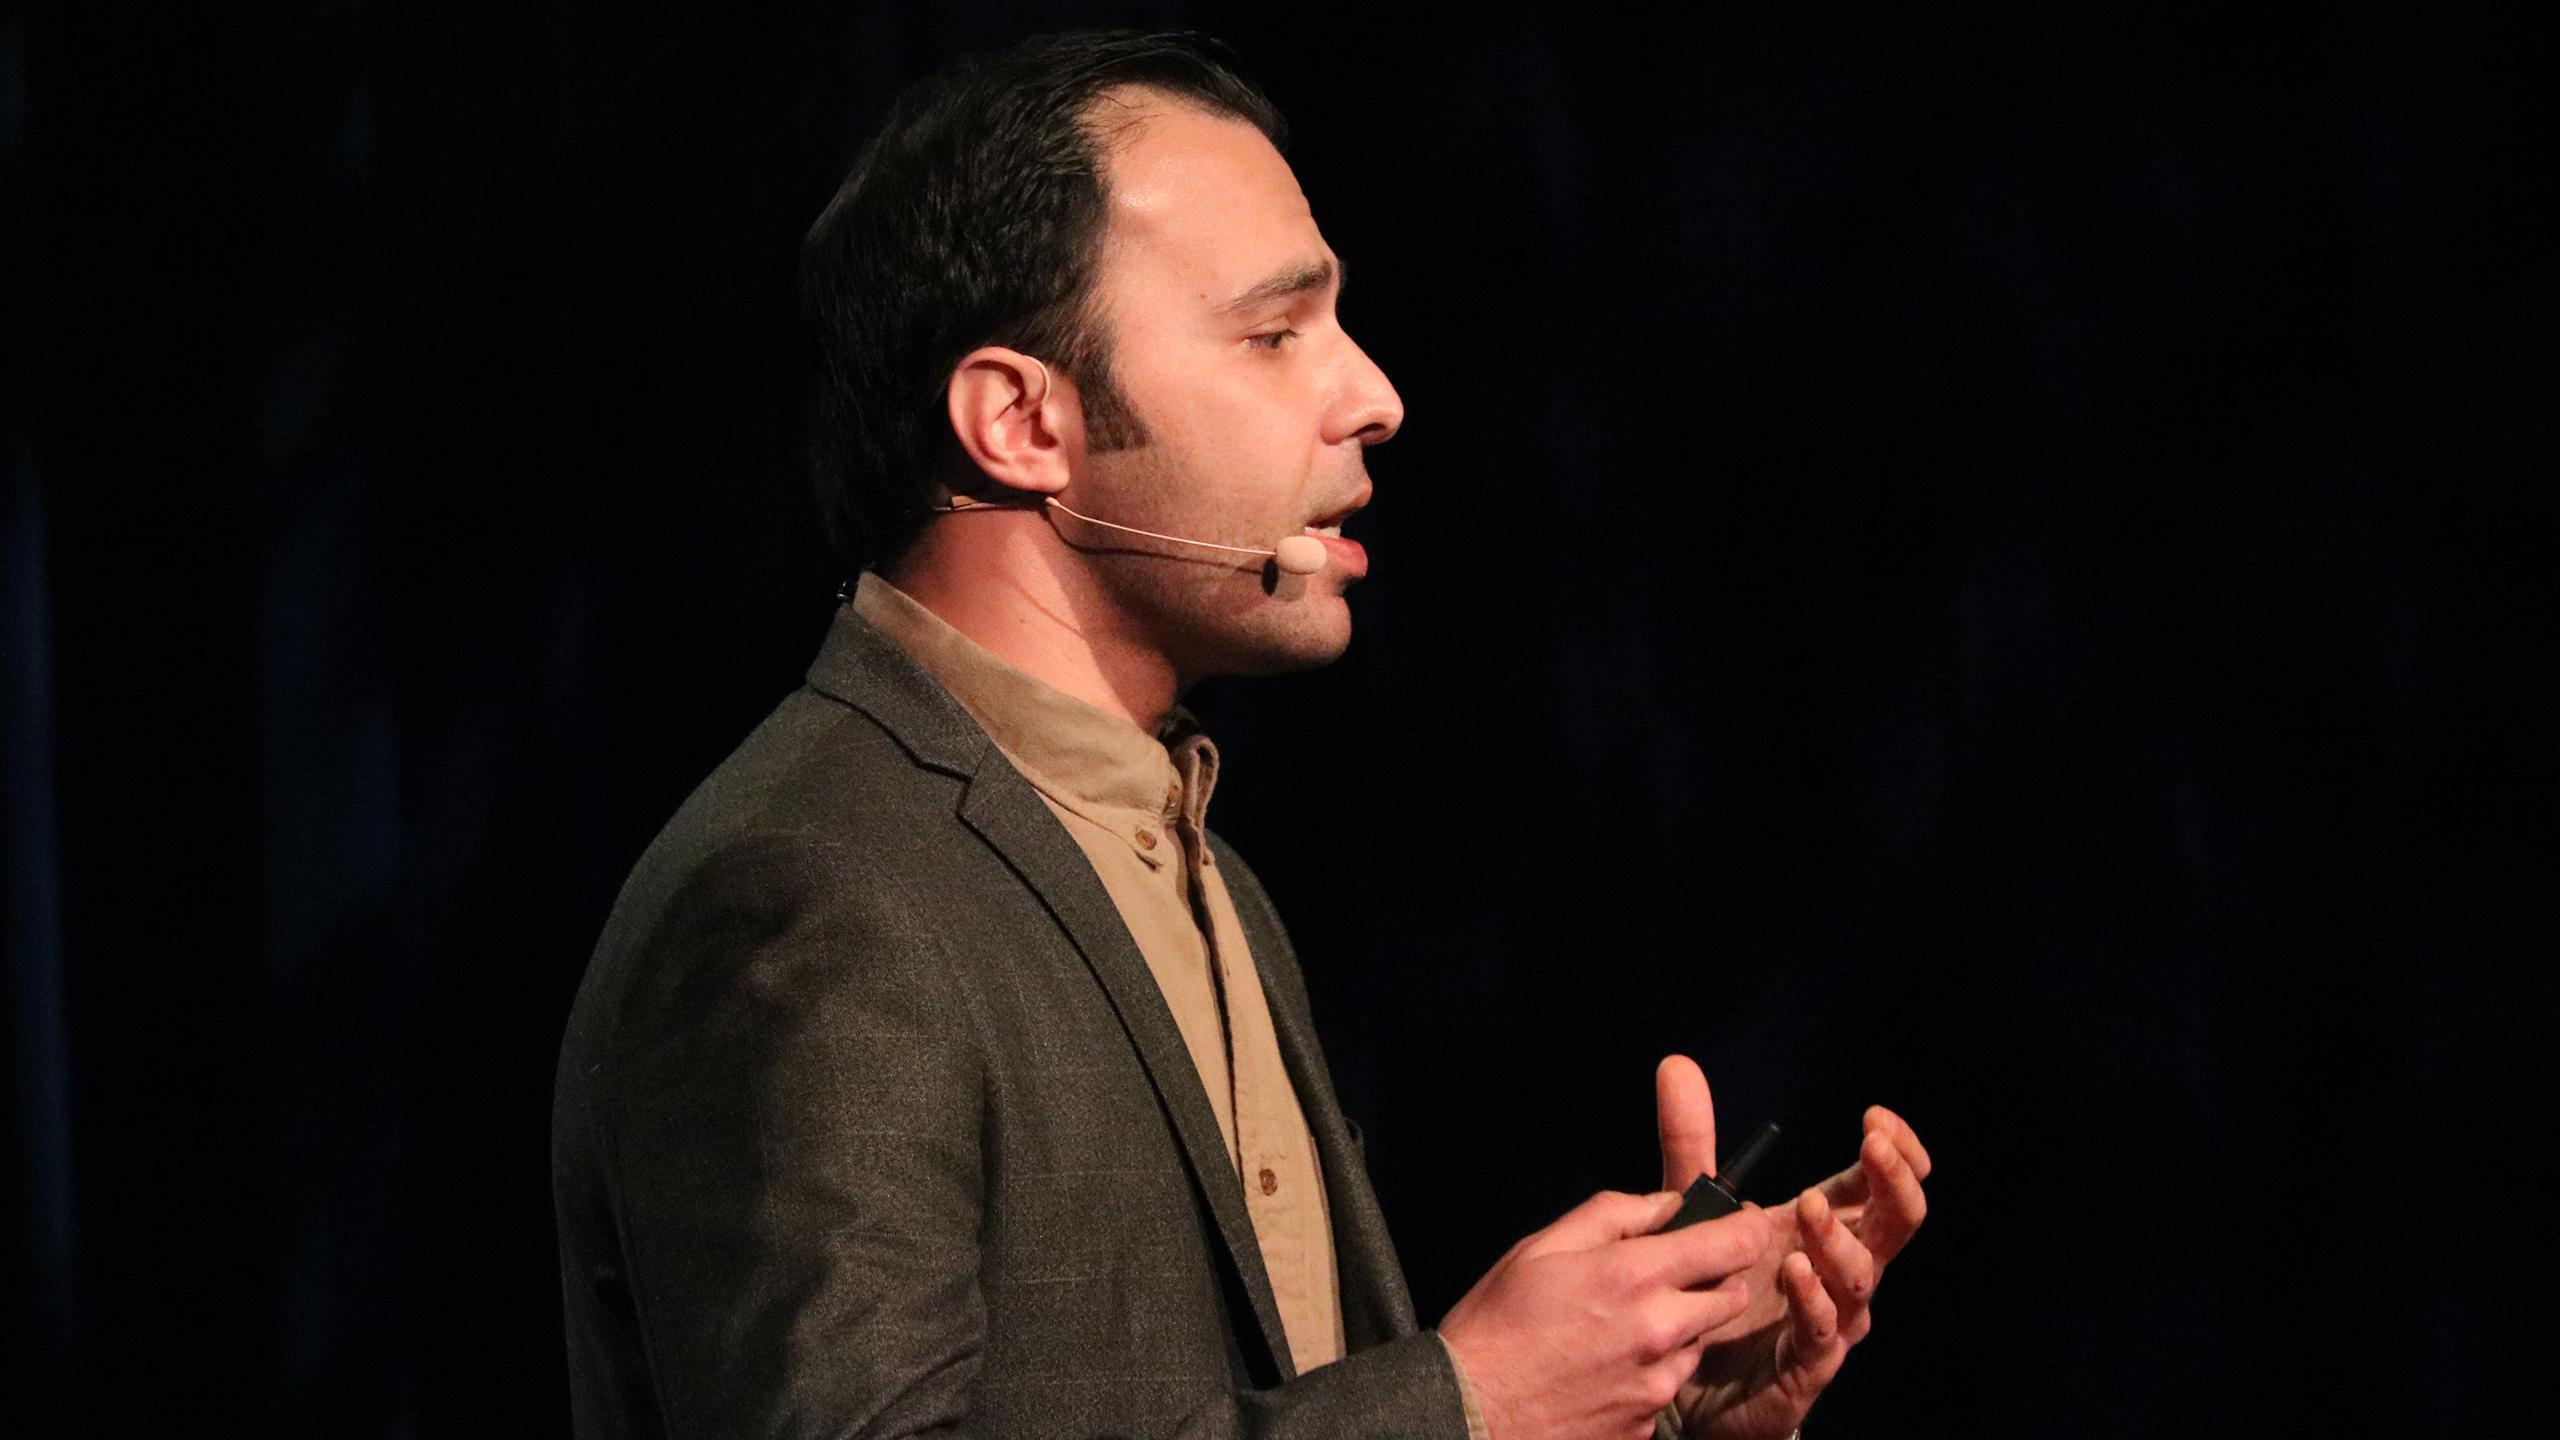 Ahmad Edilbi speaks on a stage.